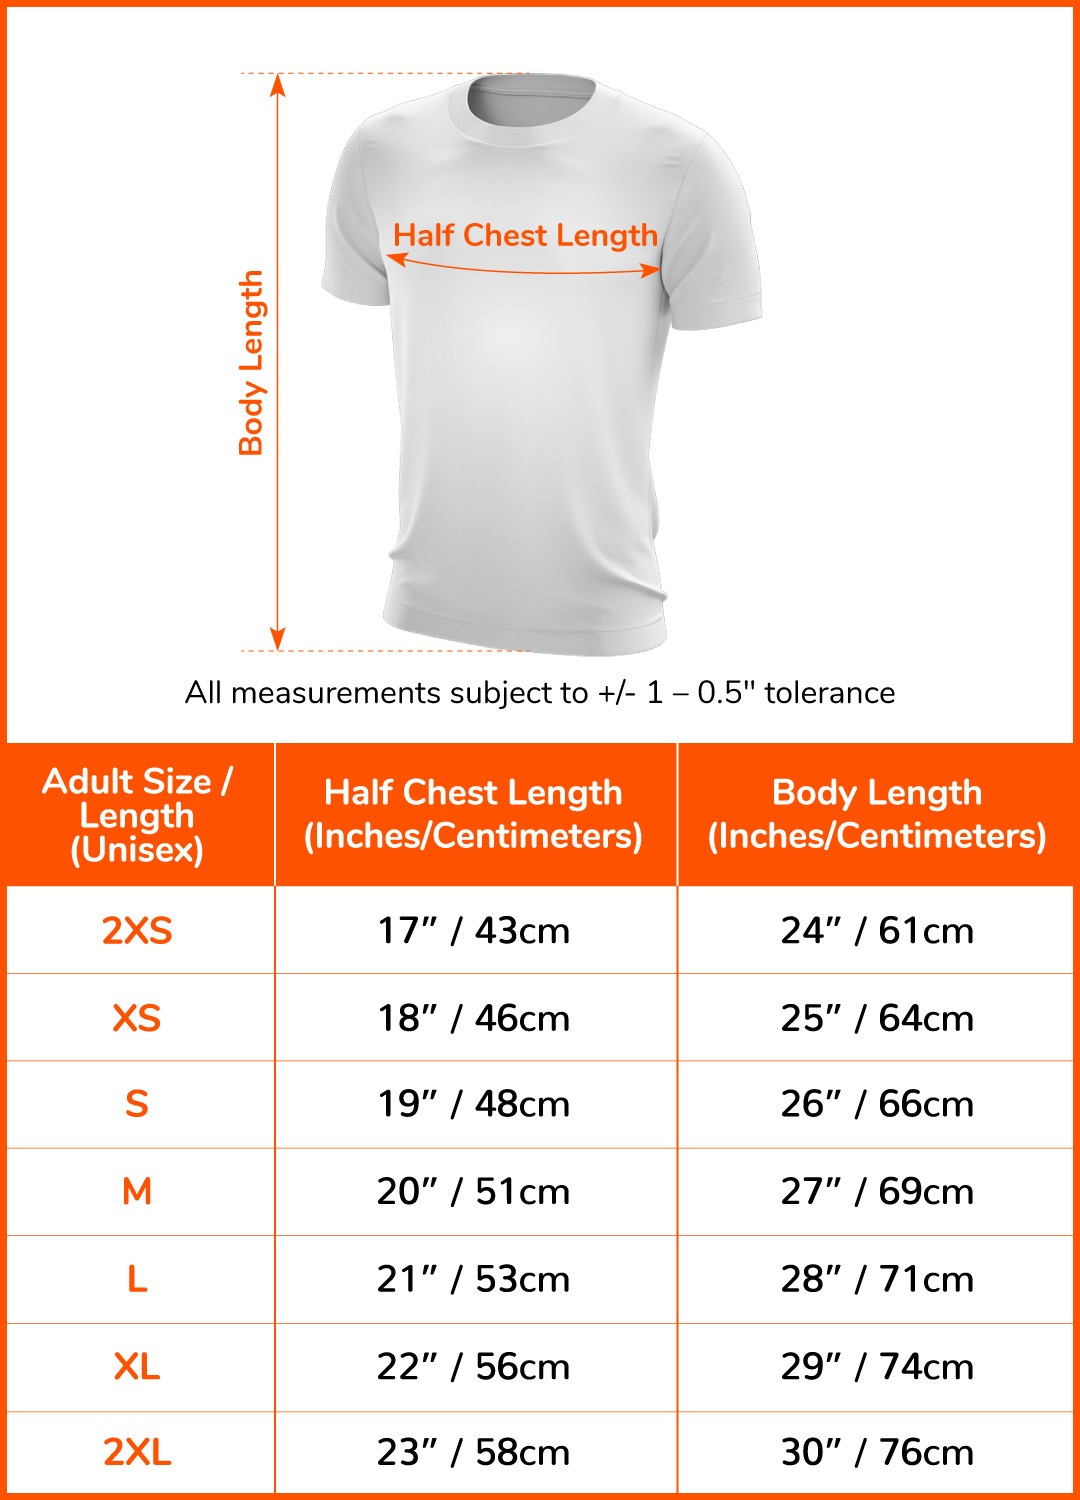 Finisher Tee - 75km#size-chart